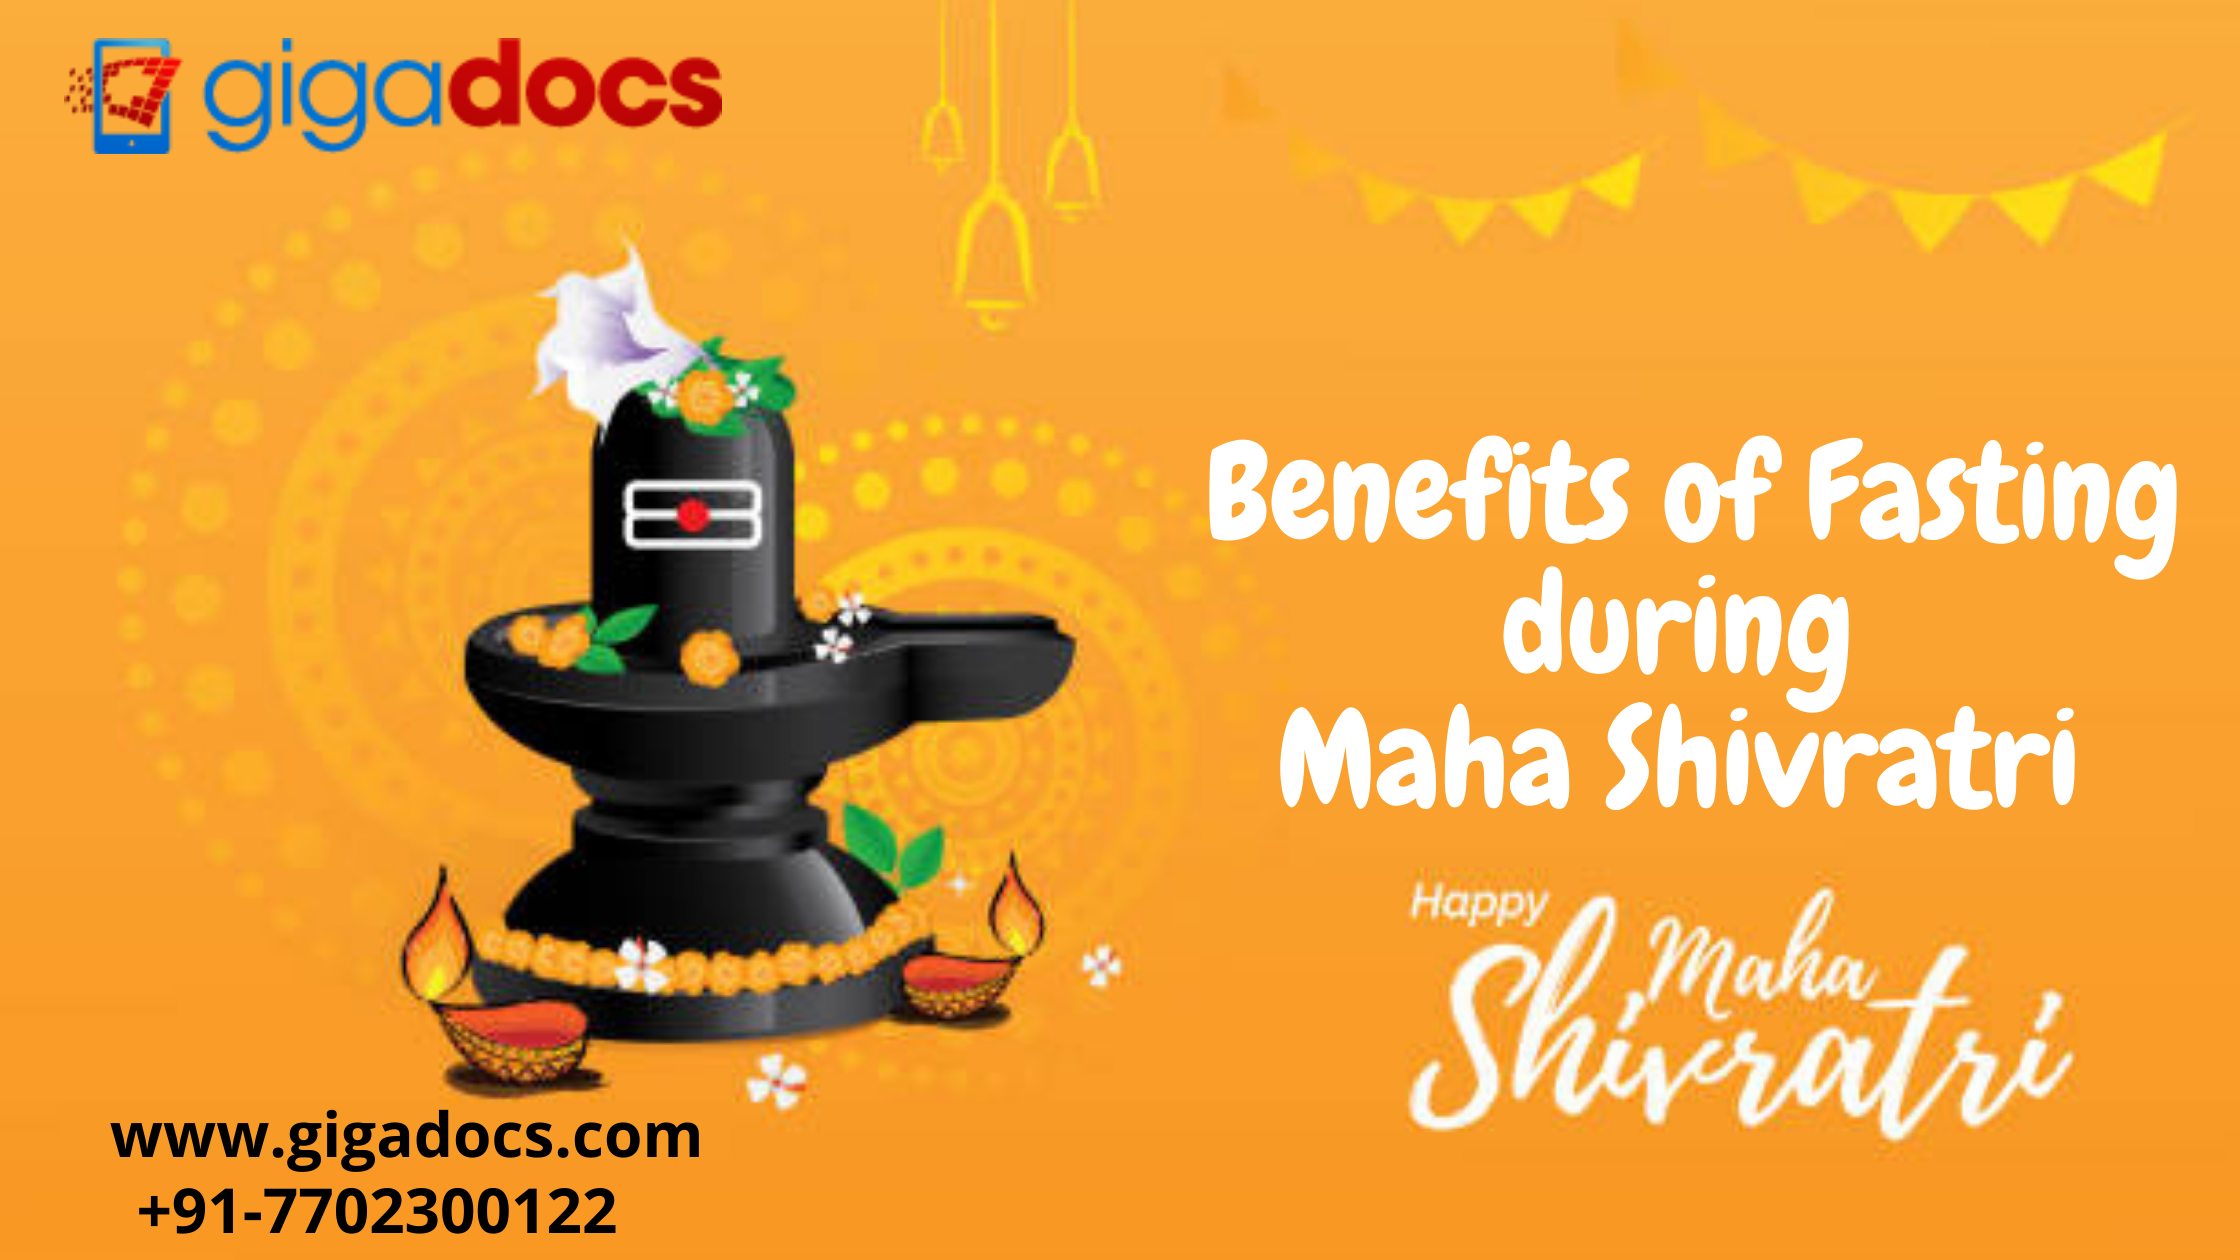 Maha Shivratri Fasting Diet for Wellbeing and Immunity